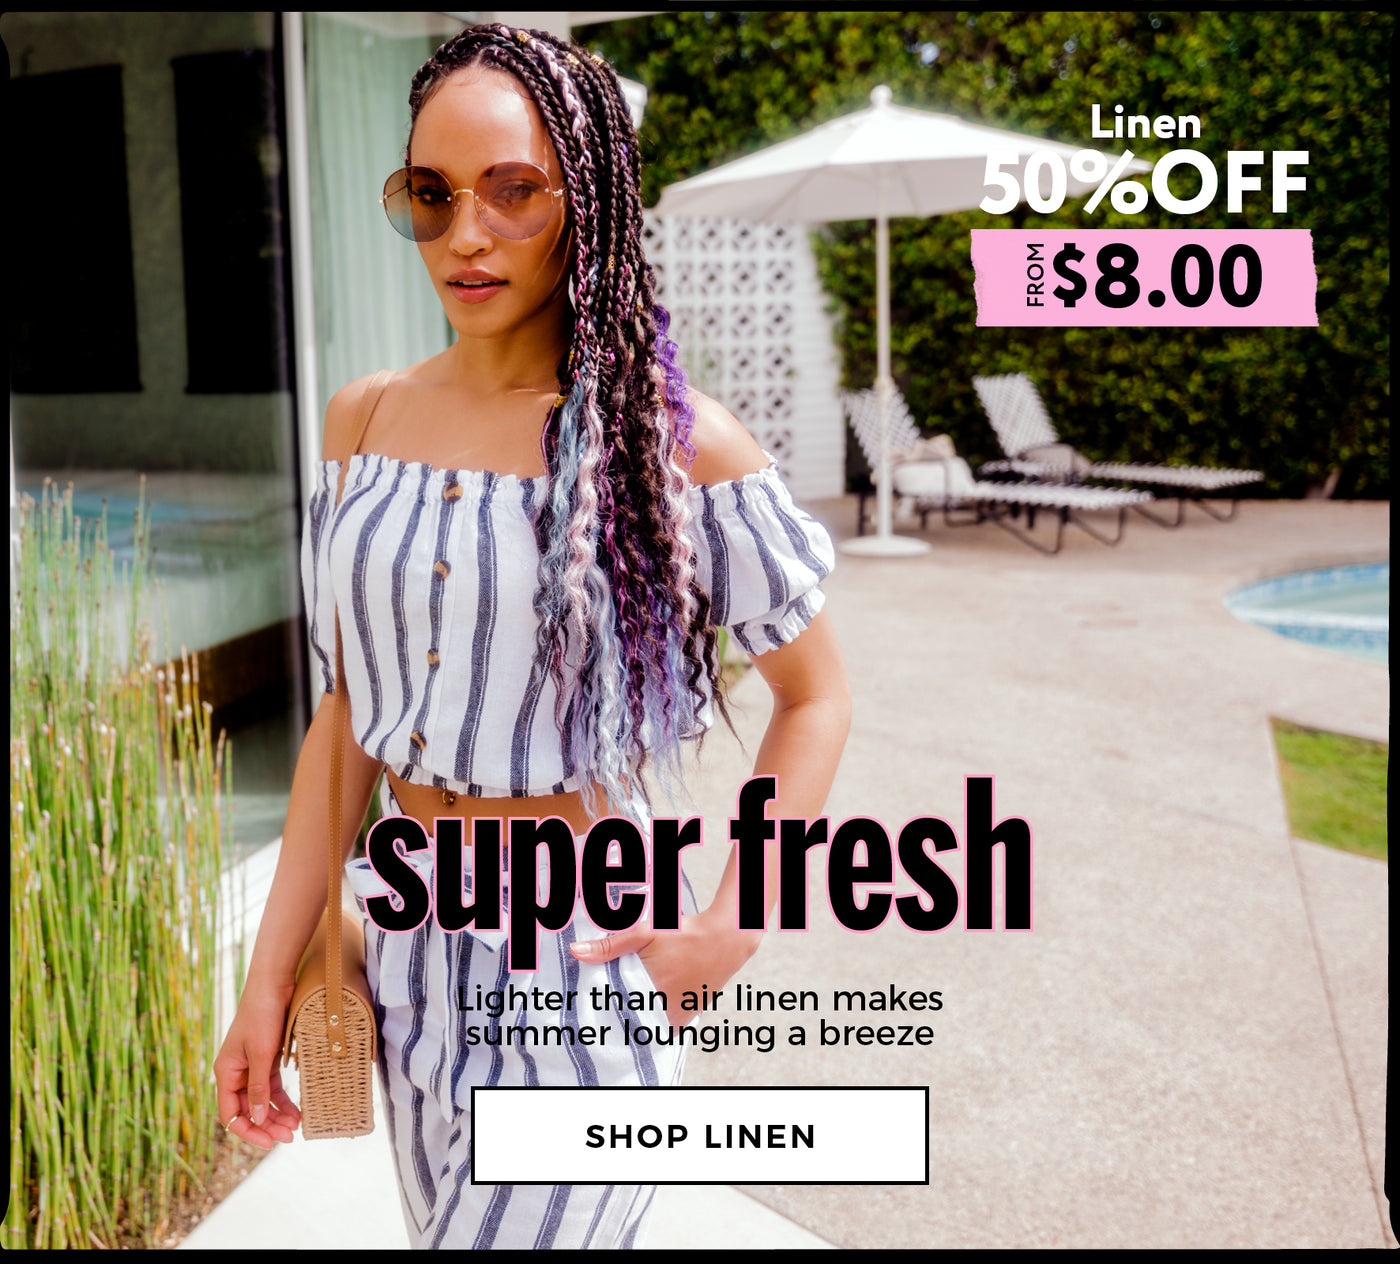 Urban Planet | Super Fresh - 50% Off Linen - Shop Linen